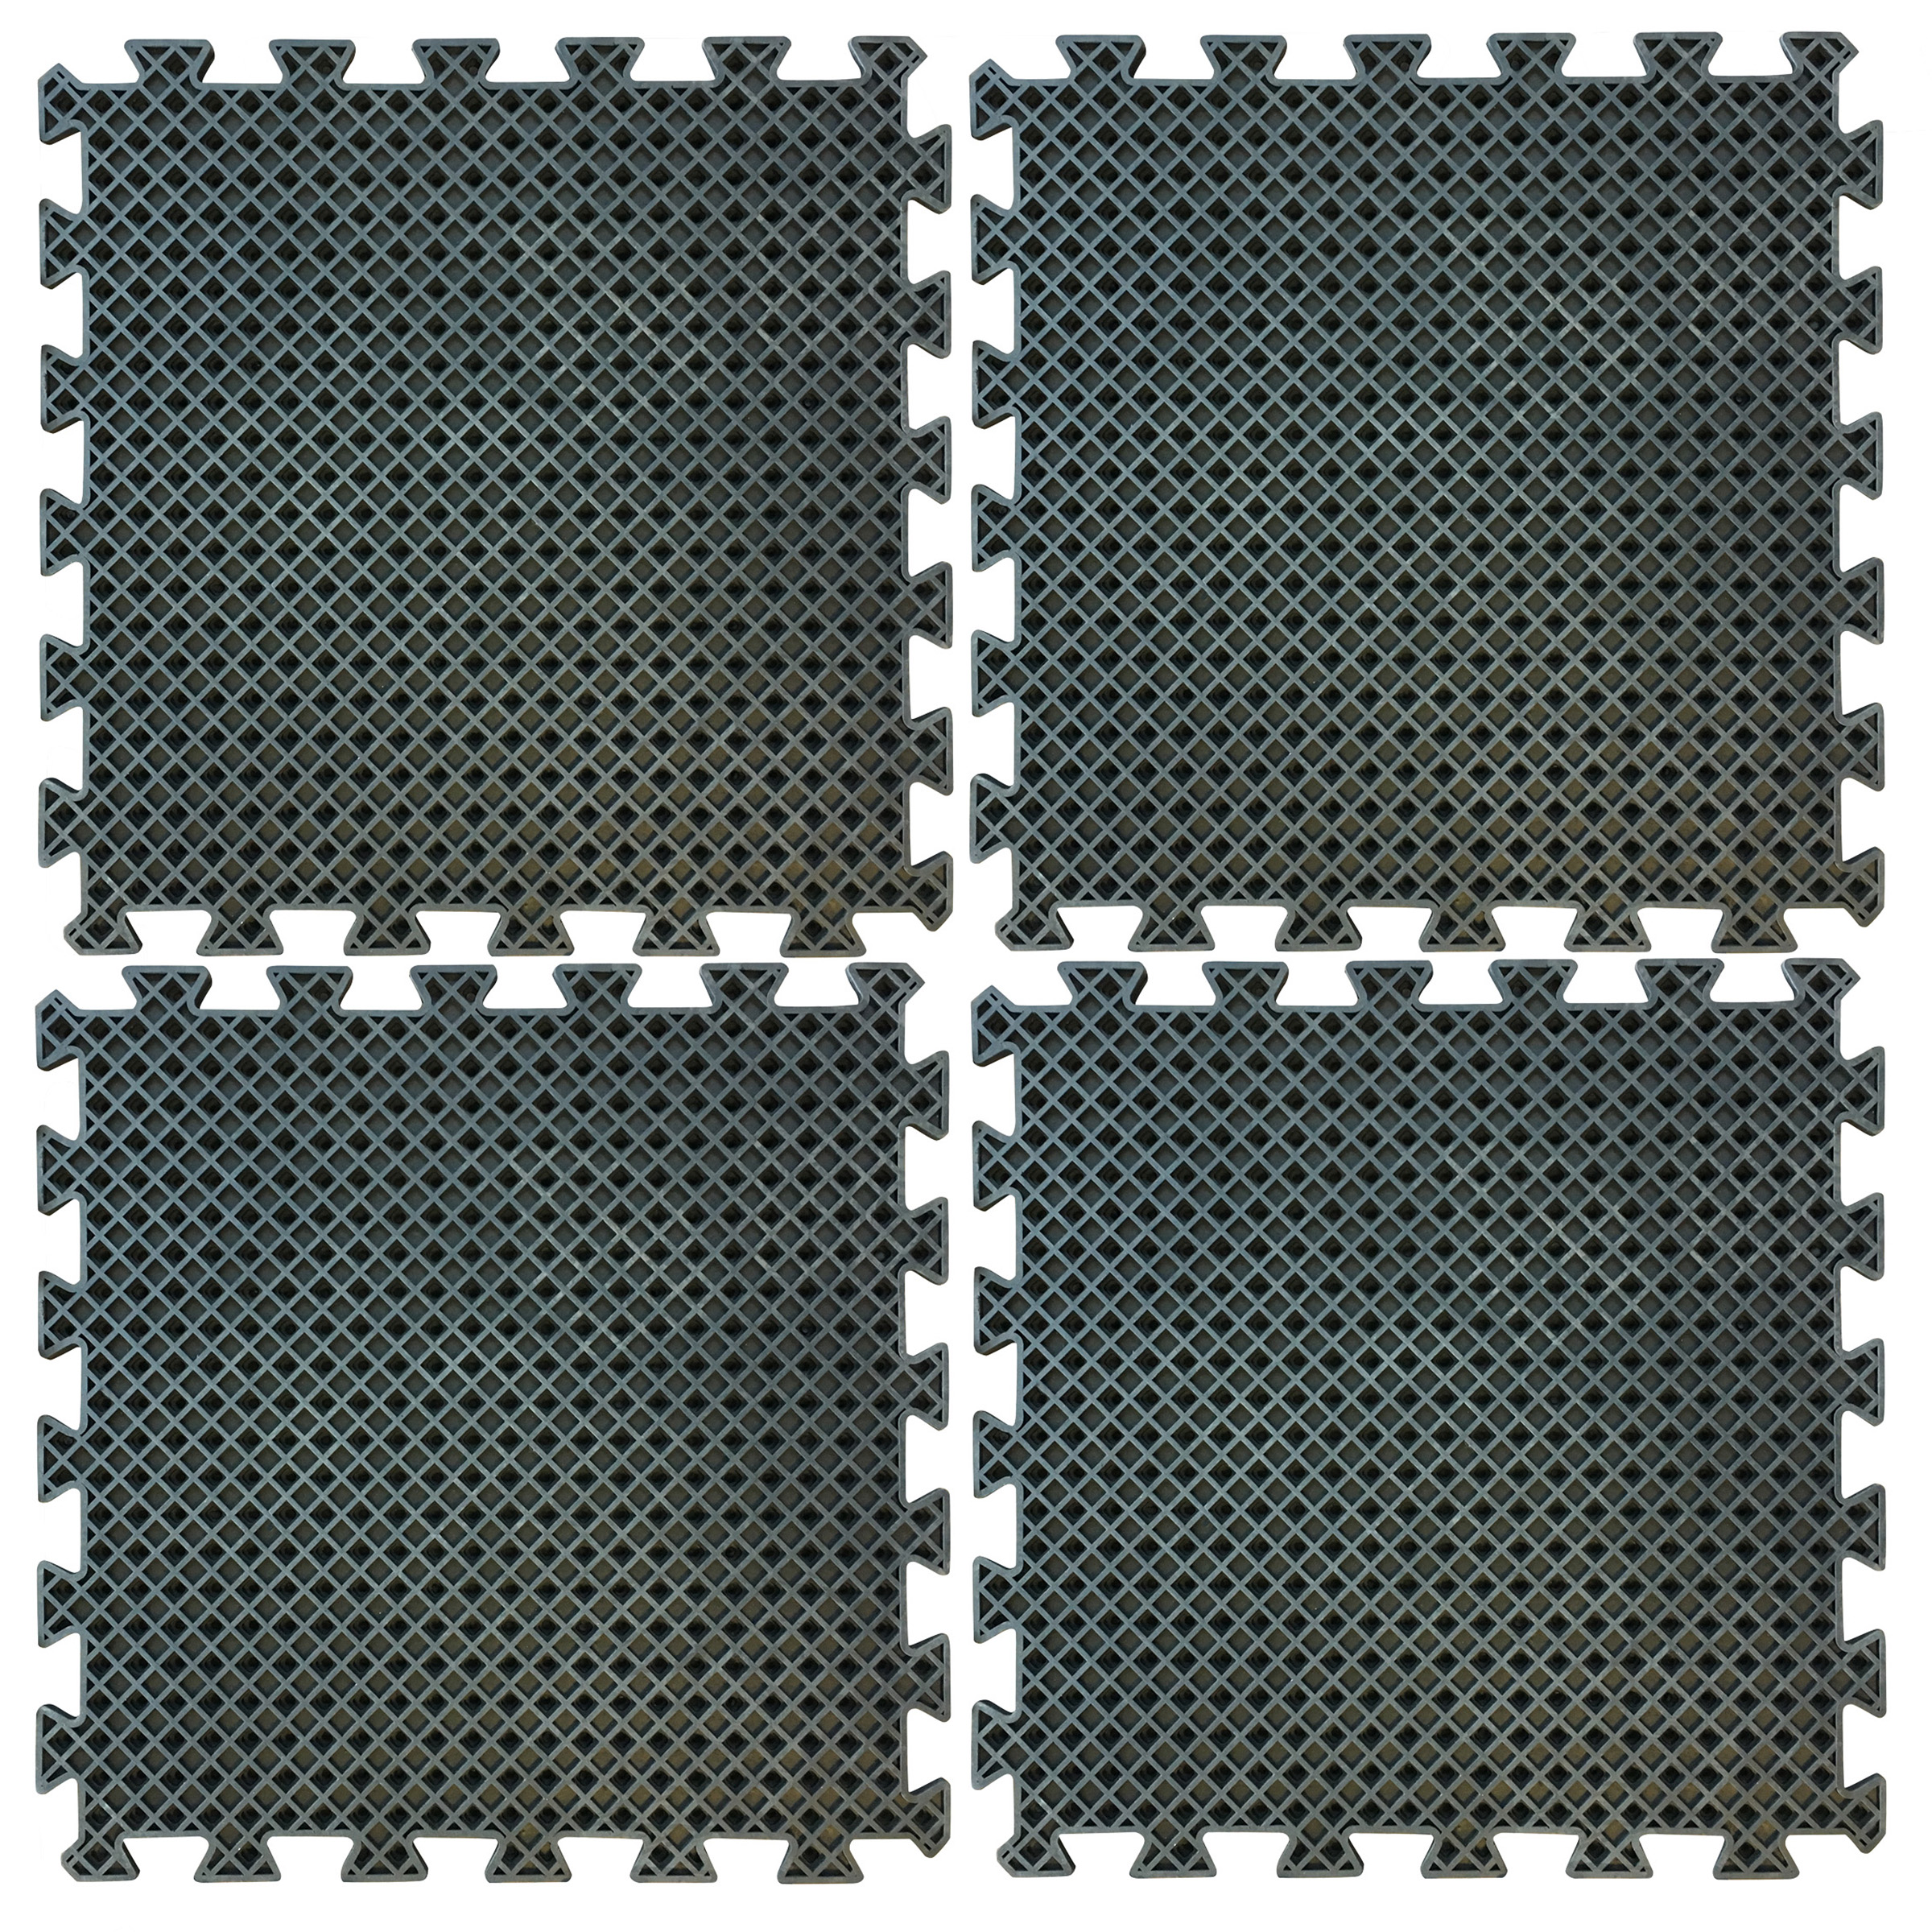 4 Piece Interlocking Rubber Mat Set